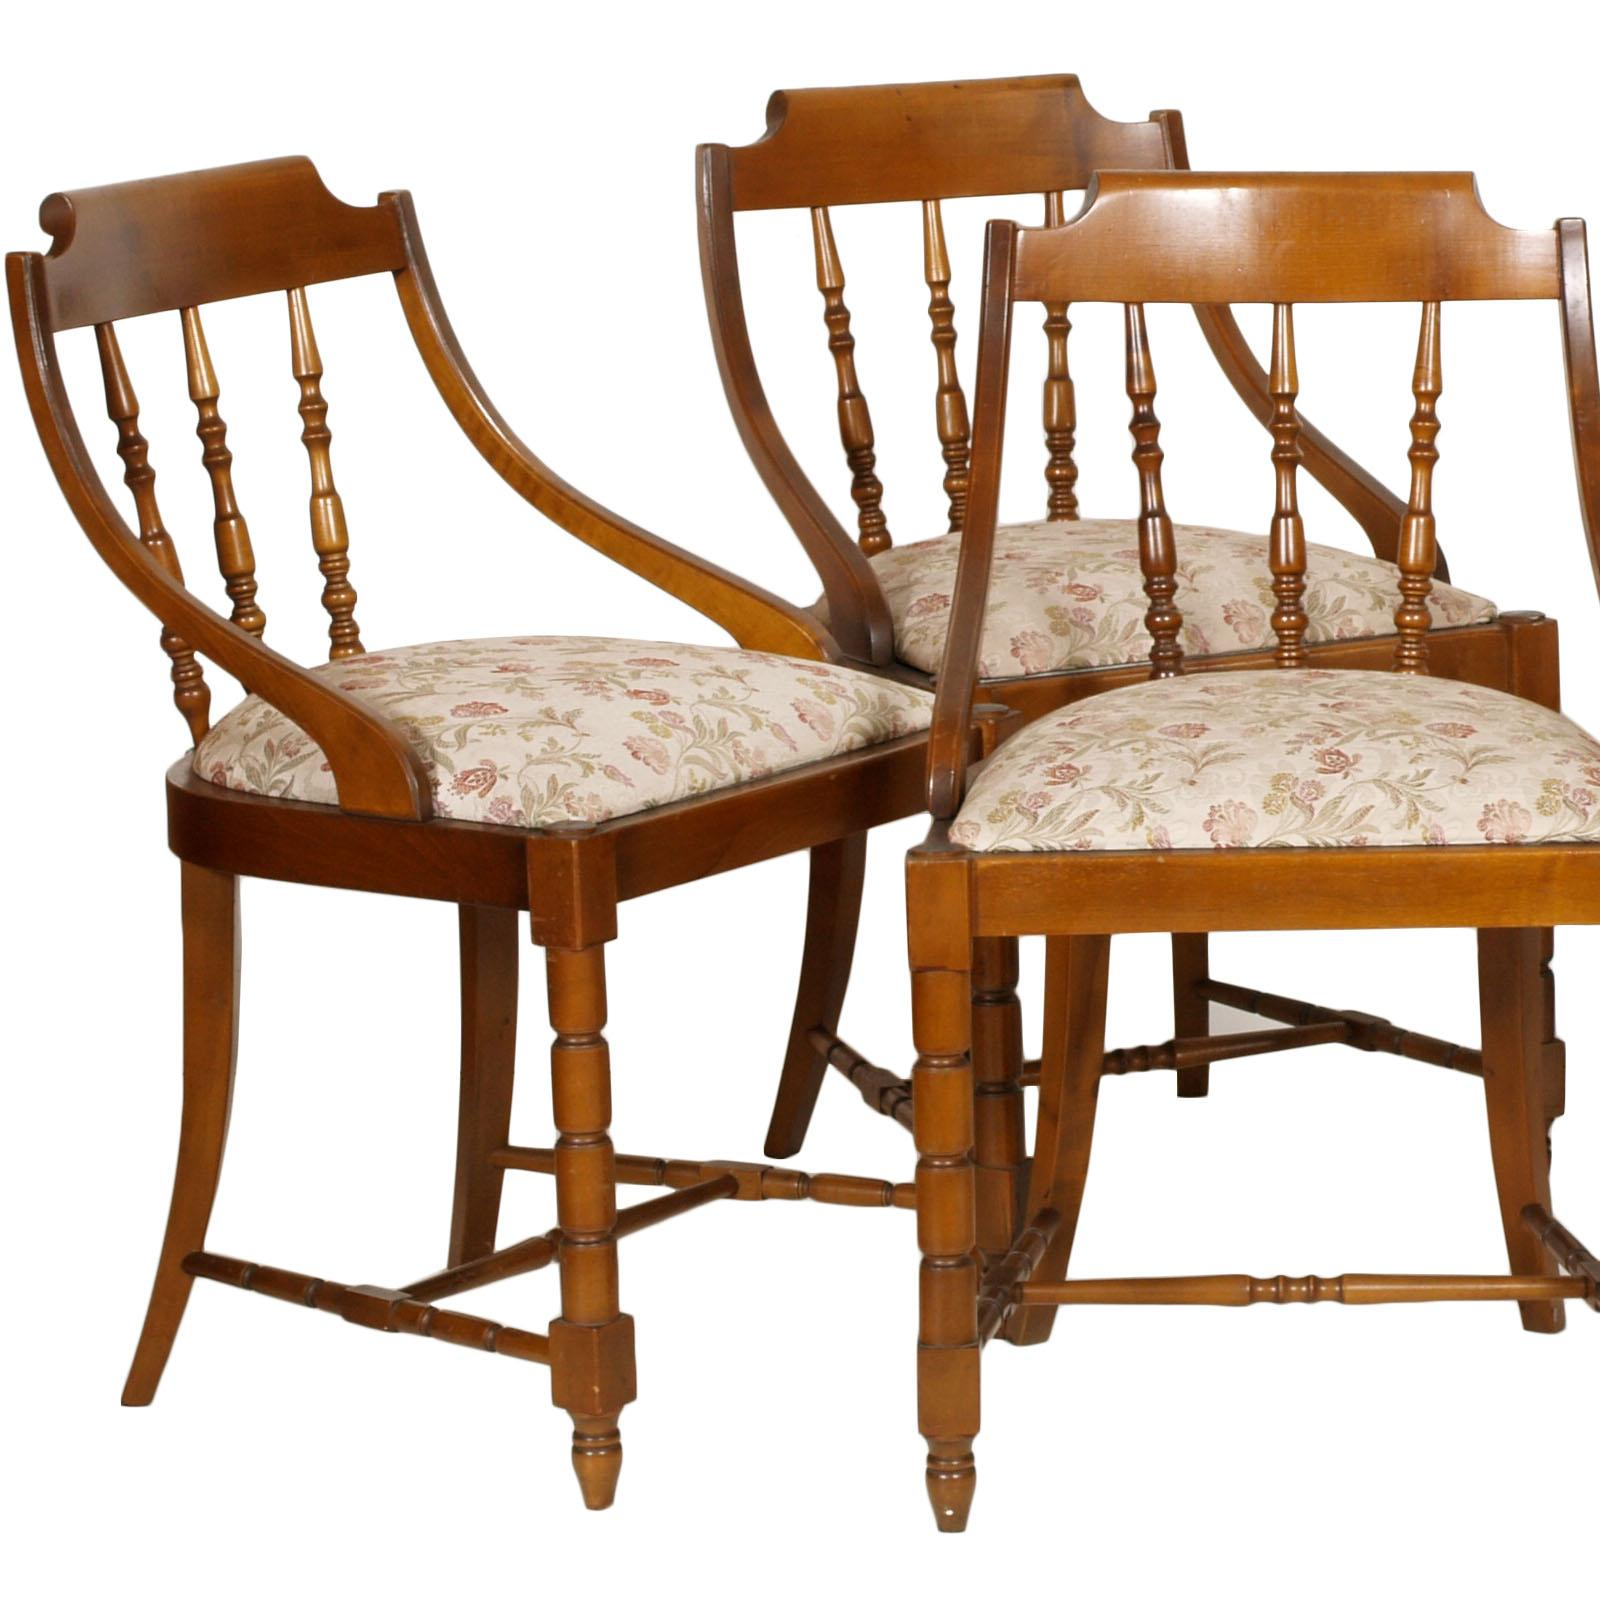 1950s, Italian Six Gondola Dinner Chairs, Country Style, In Solid Walnut,  With